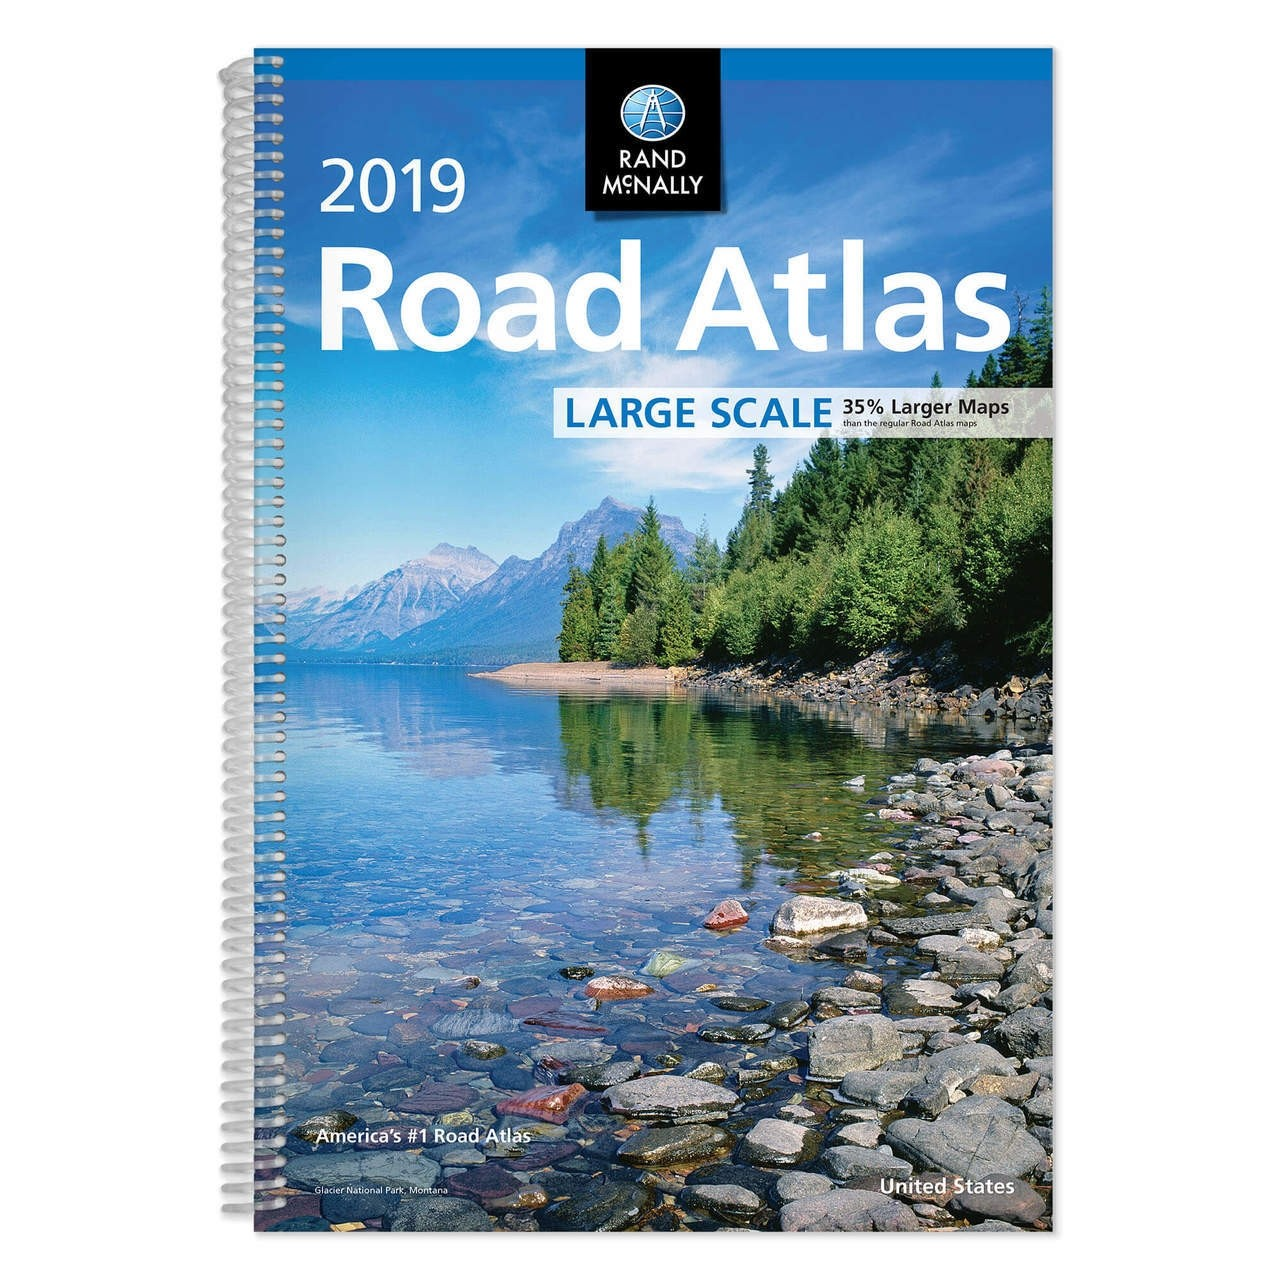 2019 Large Scale Road Atlas